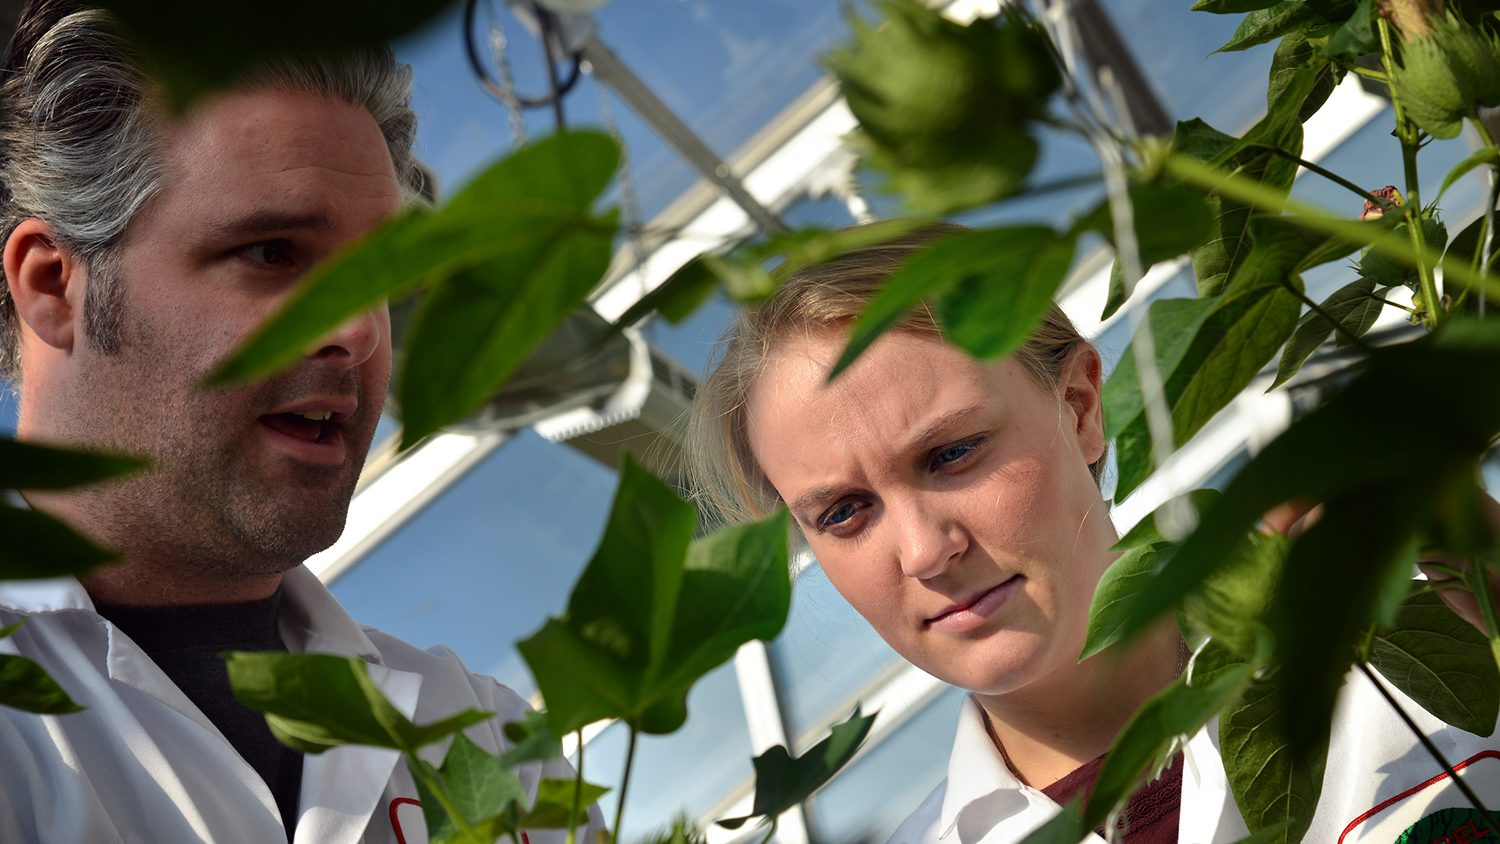 Two students looking at cotton plants.